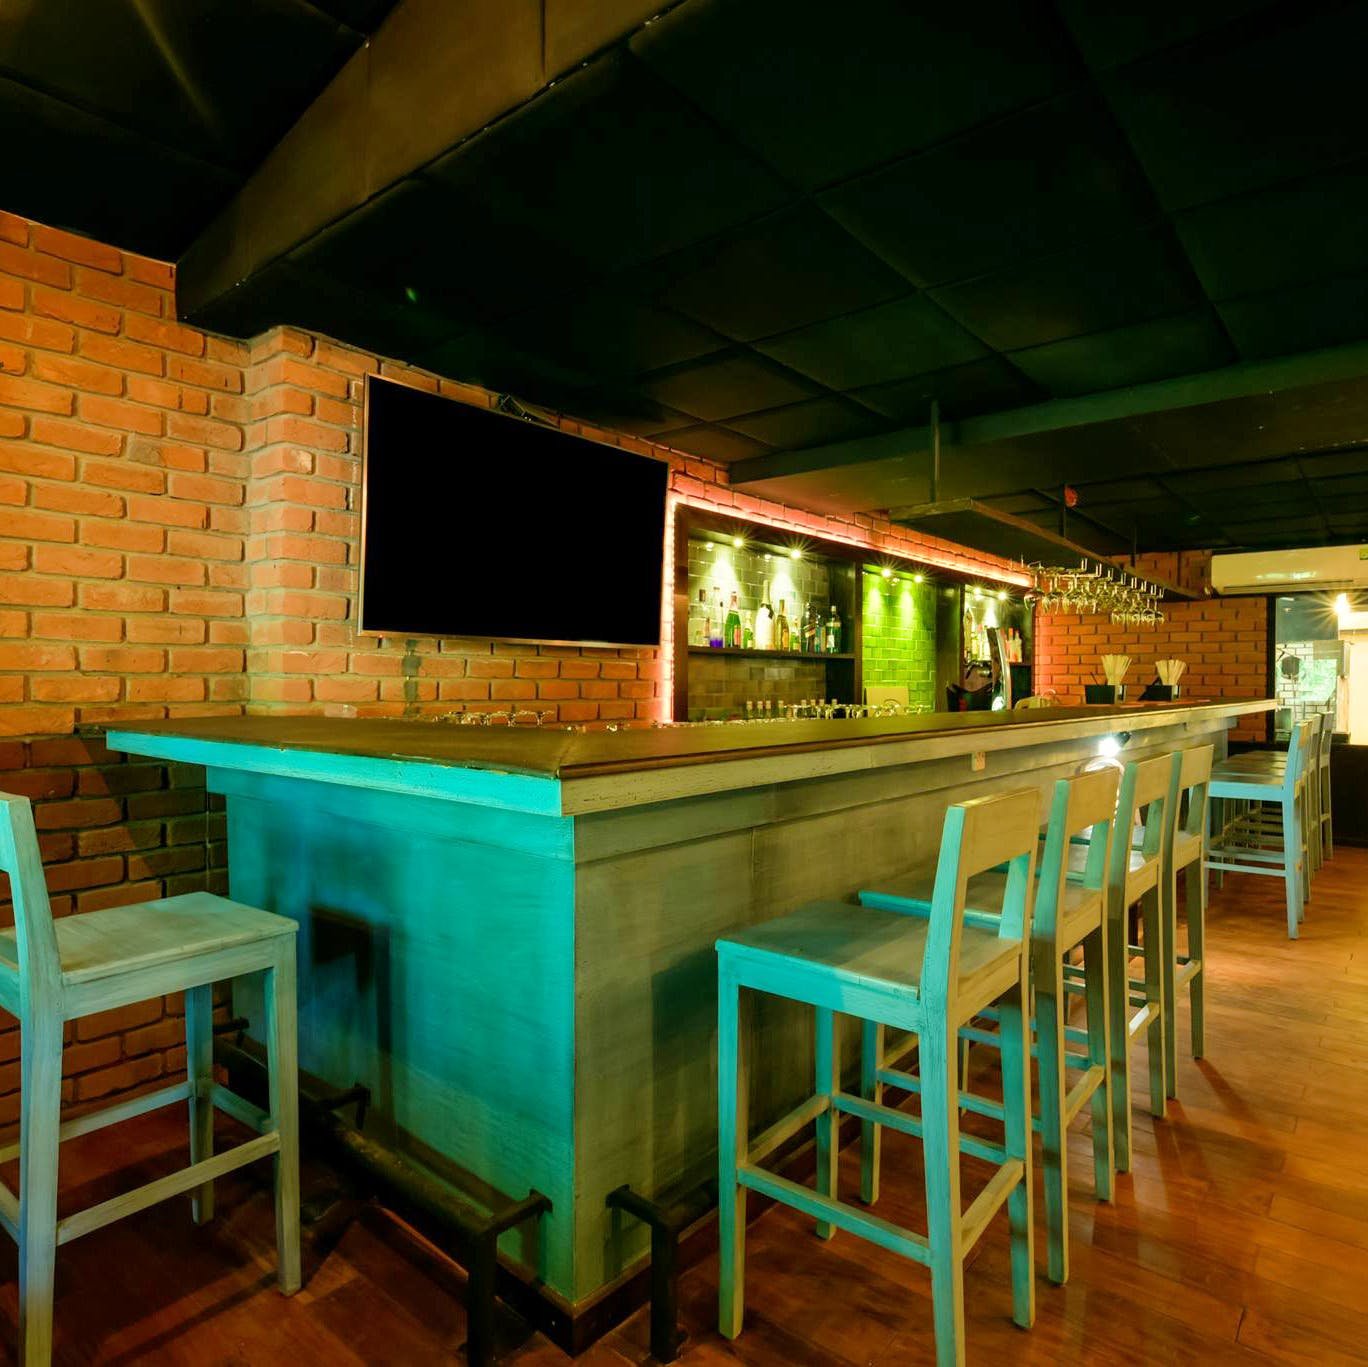 Table,Room,Furniture,Lighting,Bar stool,Building,Bar,Architecture,Interior design,Recreation room